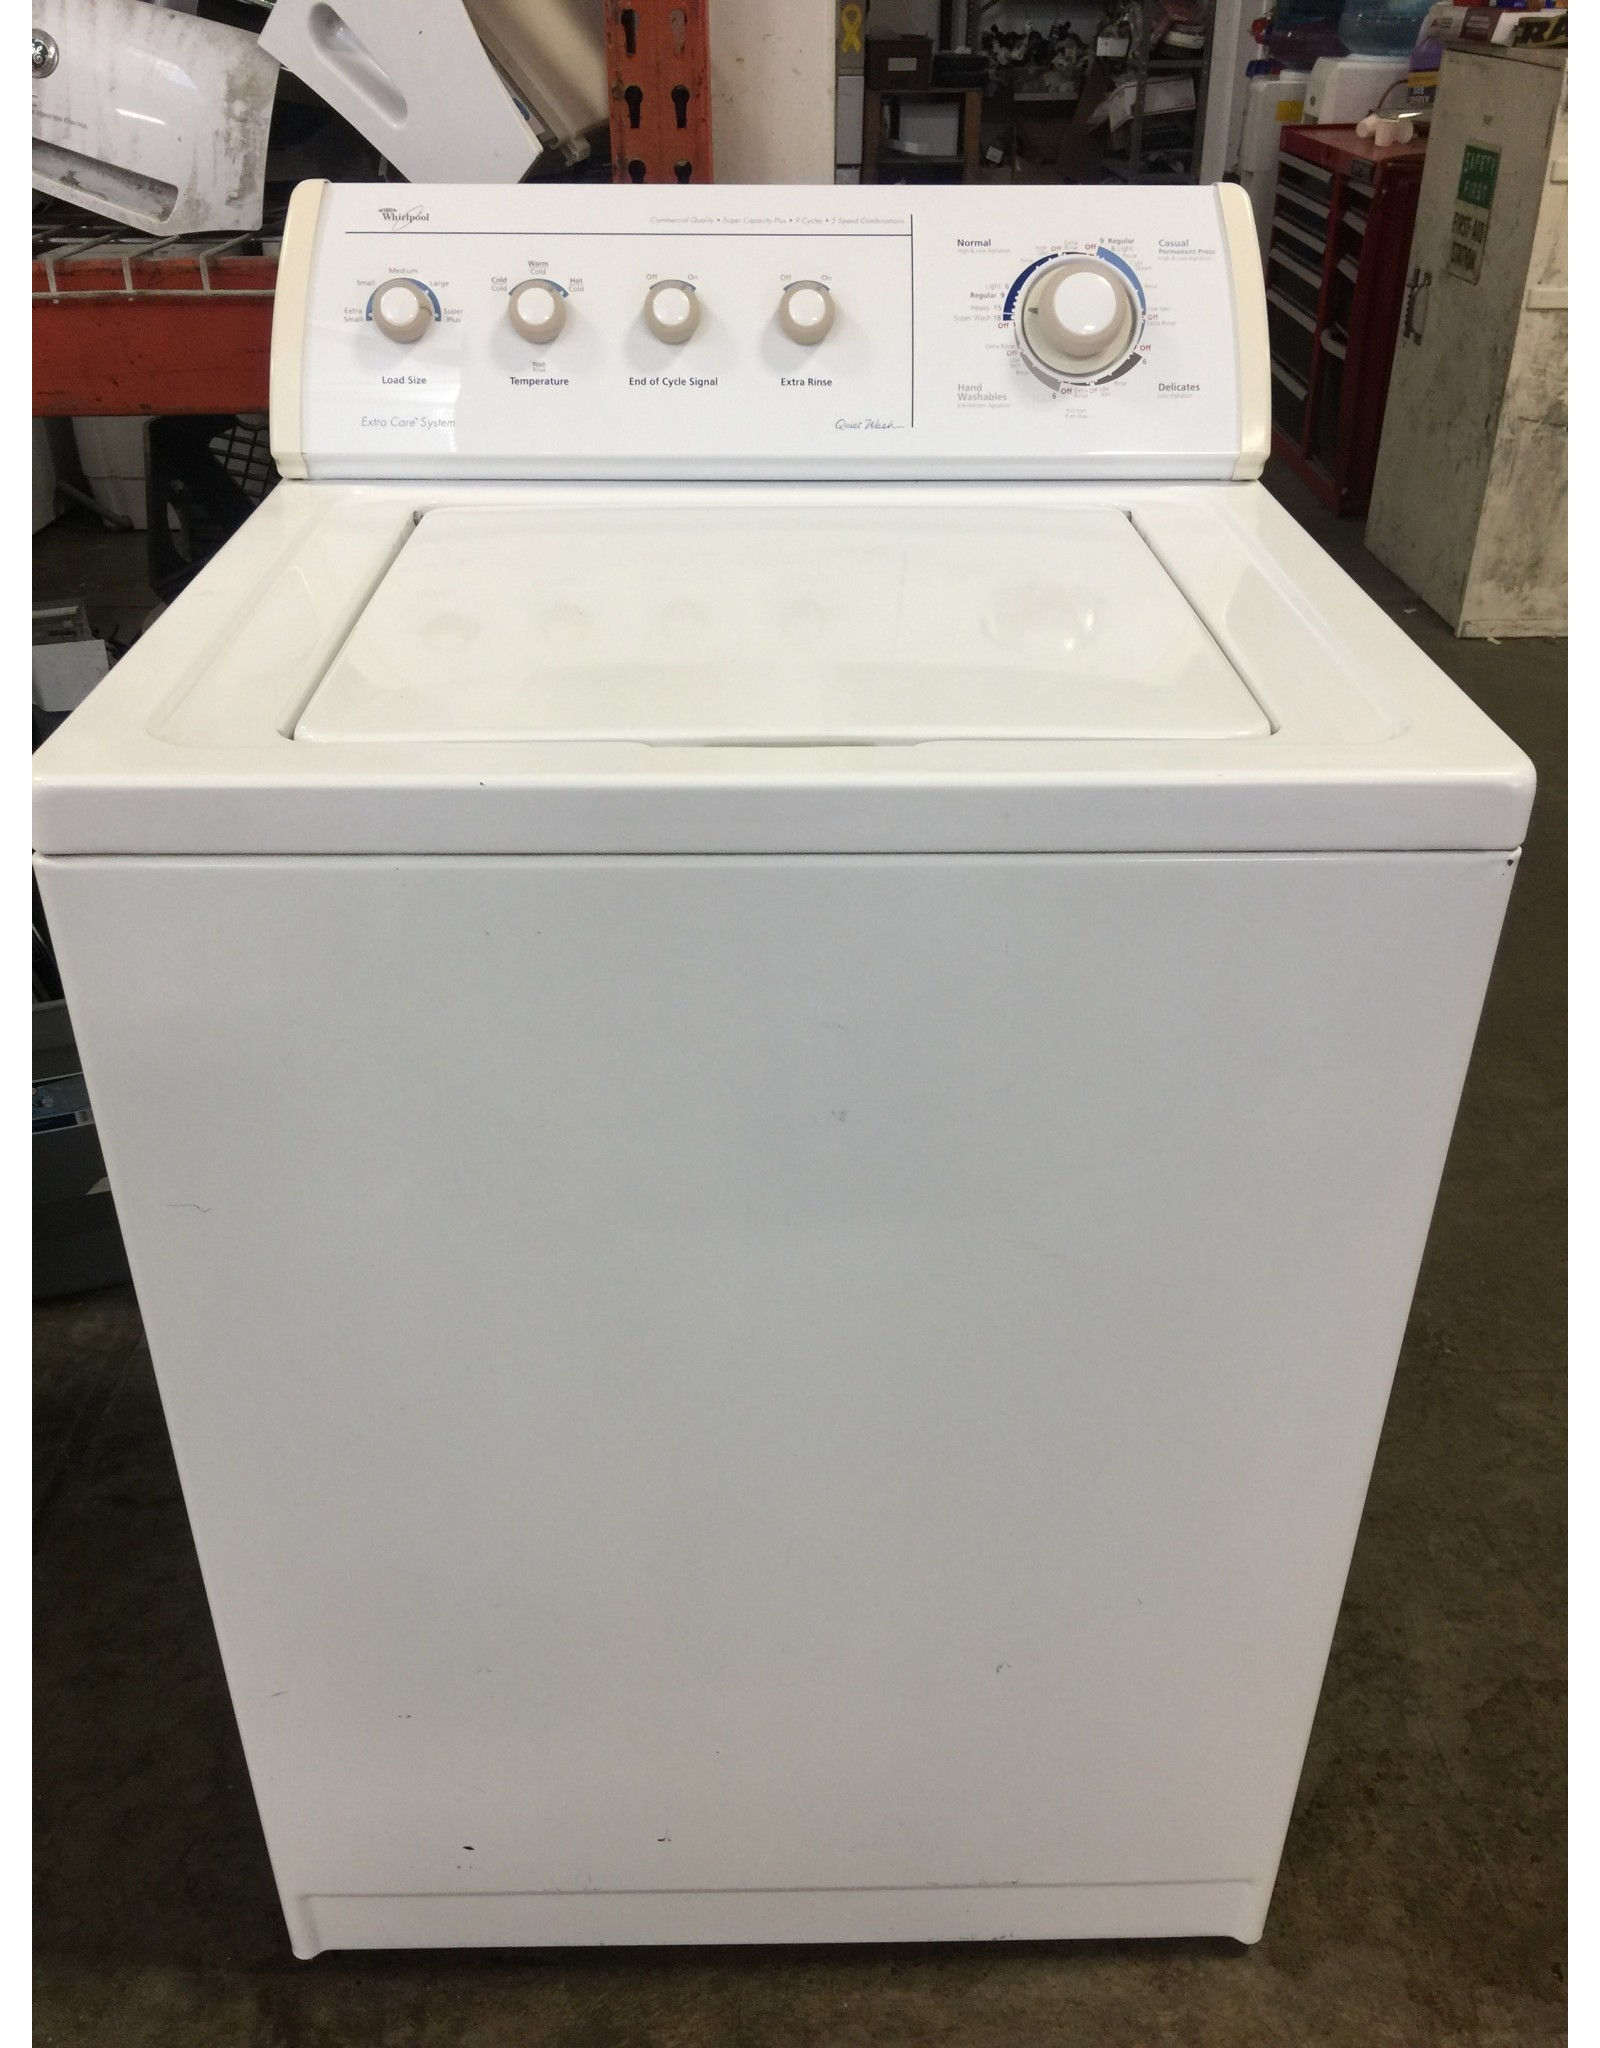 "WHIRLPOOL WHIRLPOOL ""QUIET WASH"" TOP LOAD WASHING MACHINE"